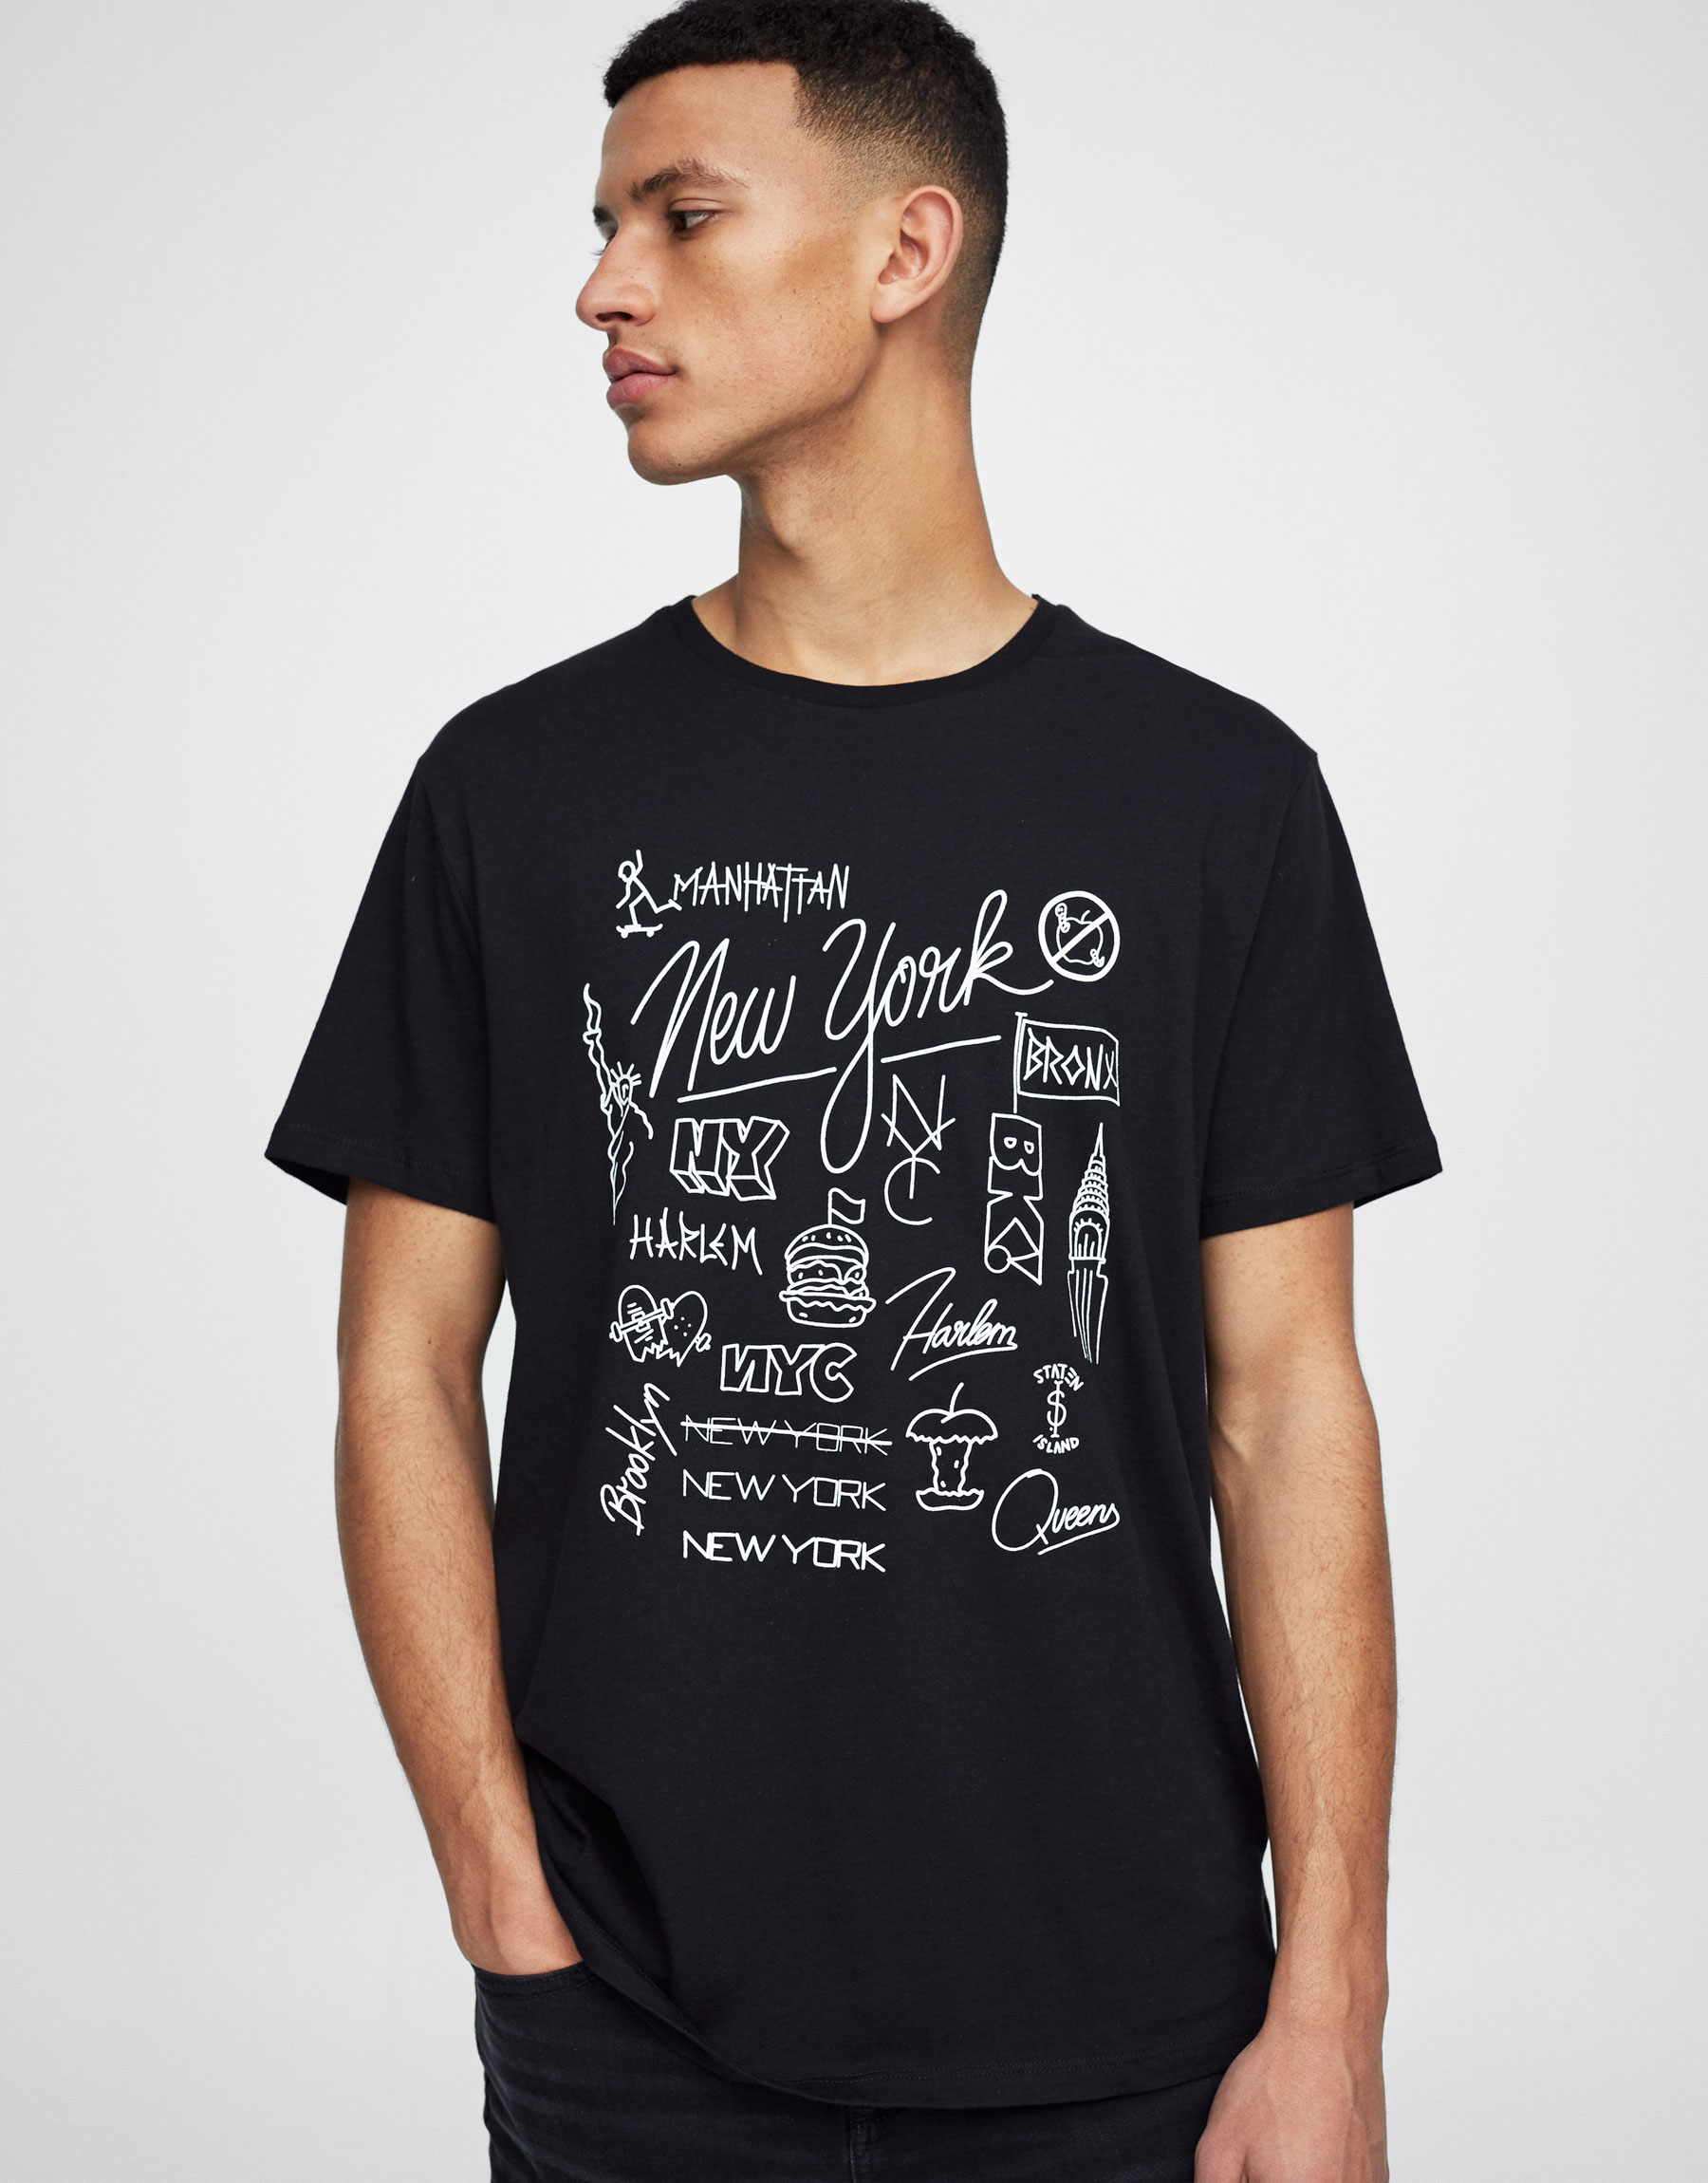 New York printed T-shirt